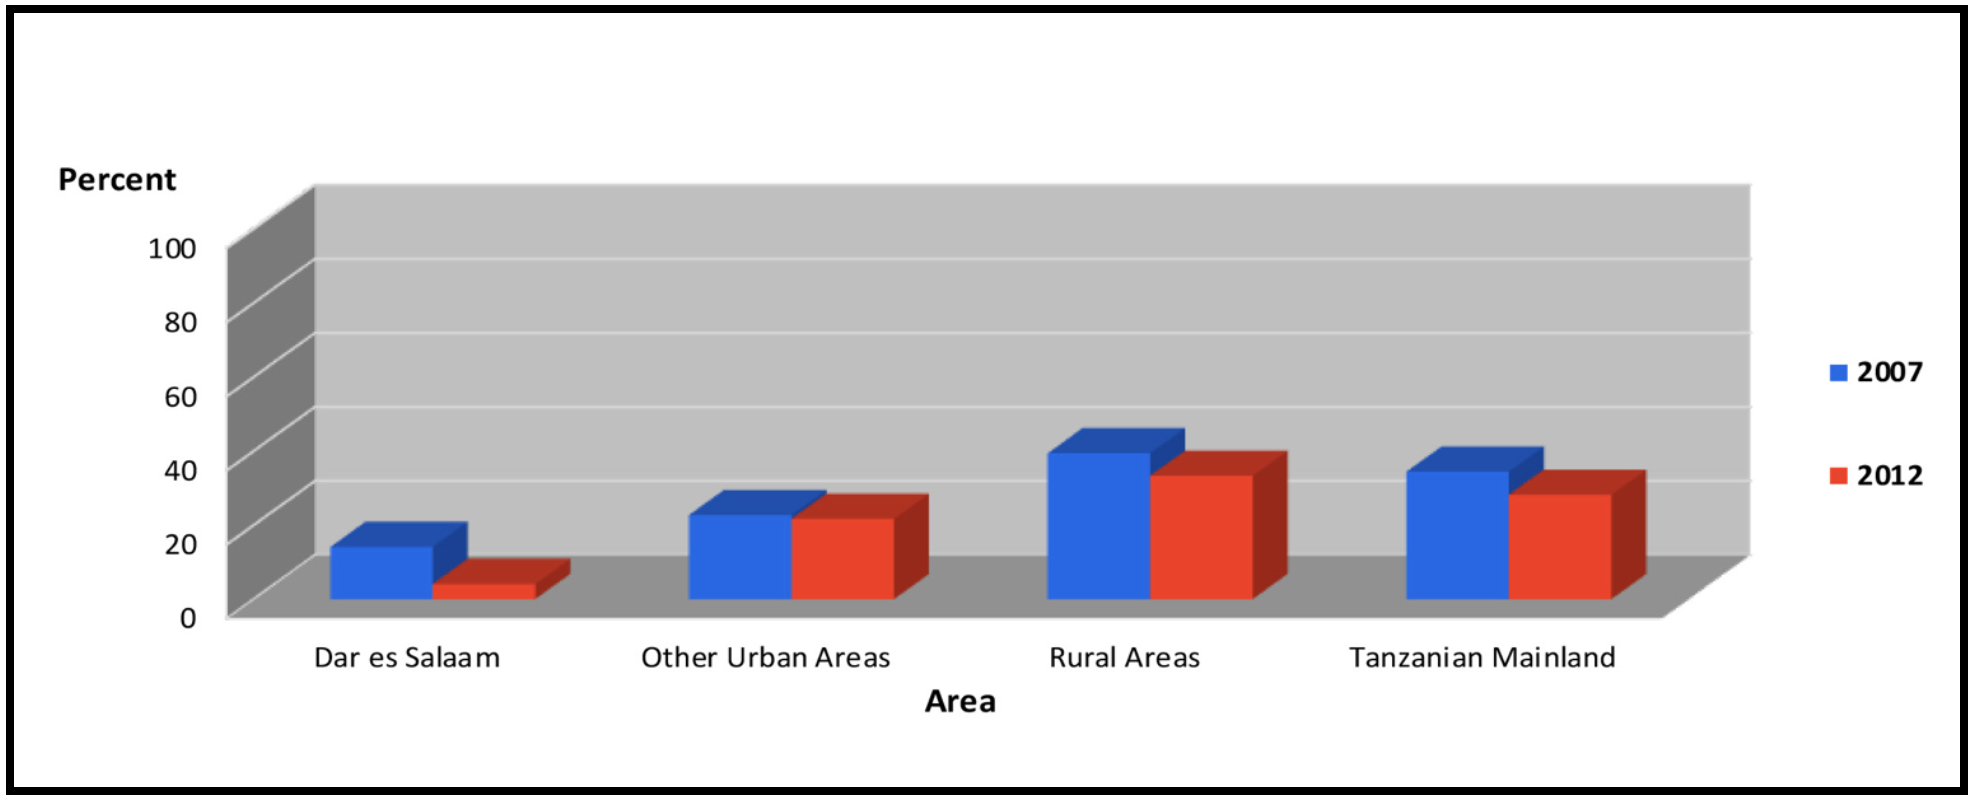 Percentage of population below the basic needs poverty line by area. Data from NBS 2014.